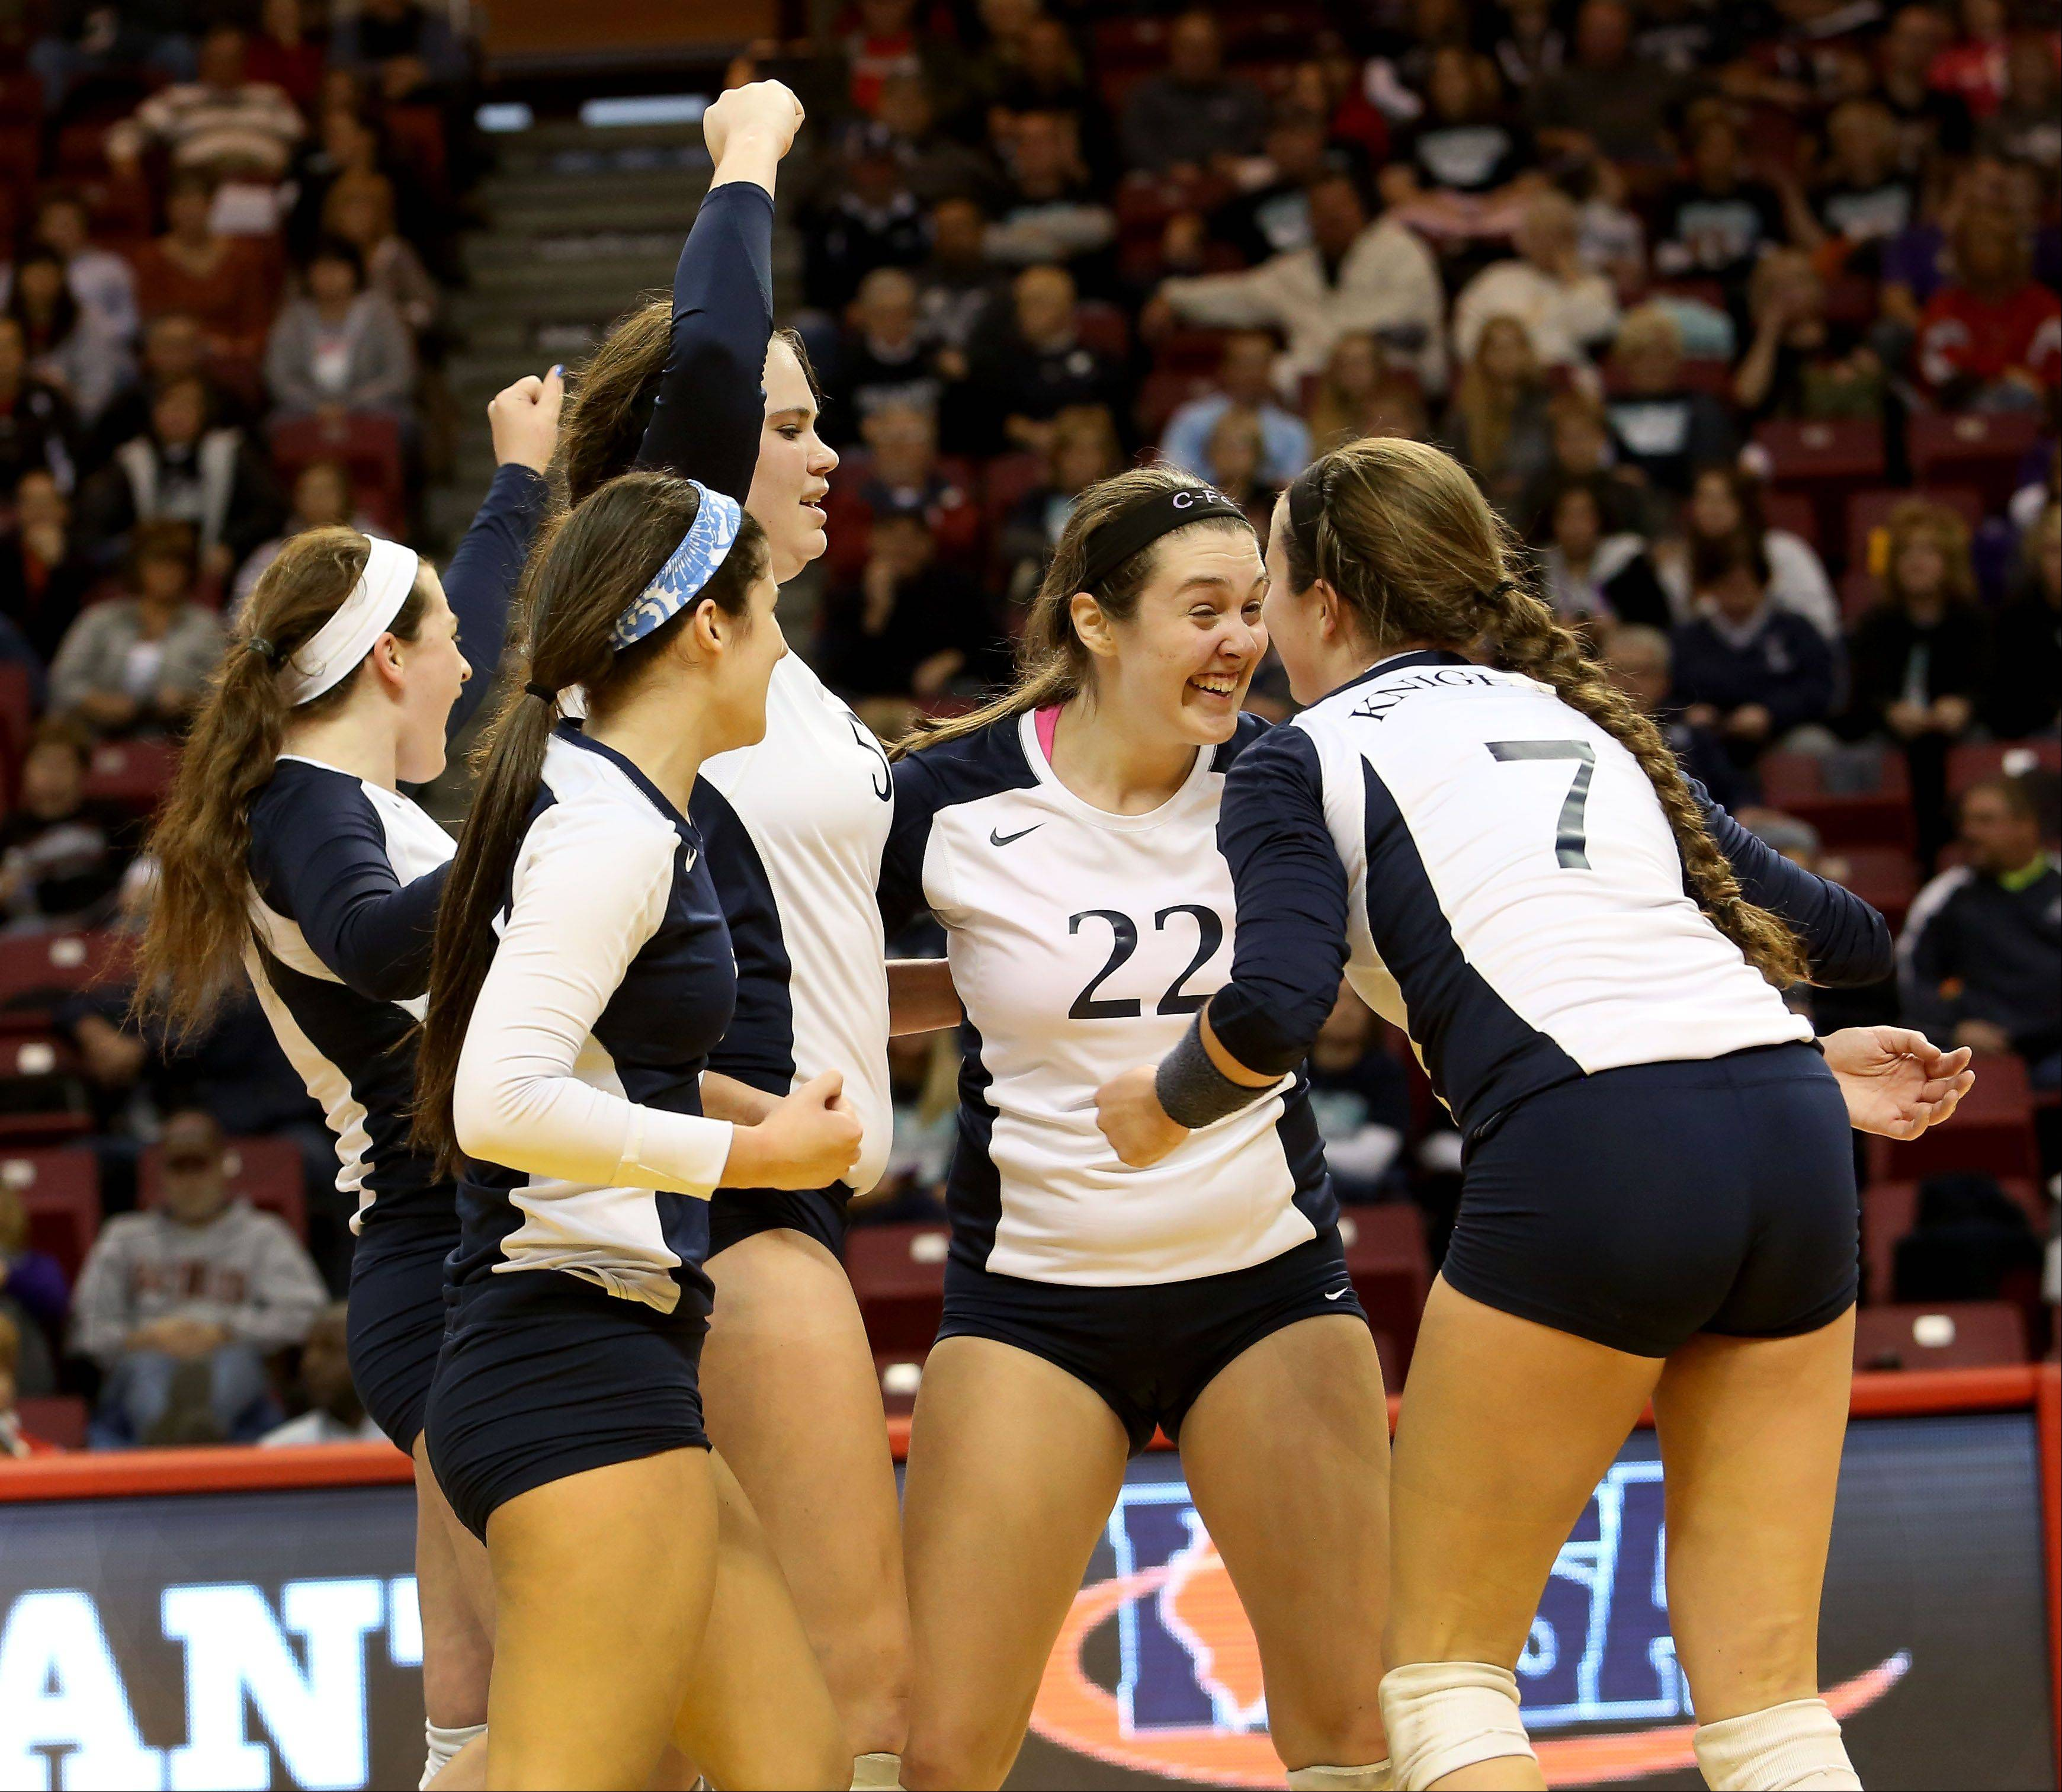 IC Catholic Prep celebrates its win over Deer Creek-Mackinaw in Class 2A state semifinal girls volleyball on Friday in Normal.